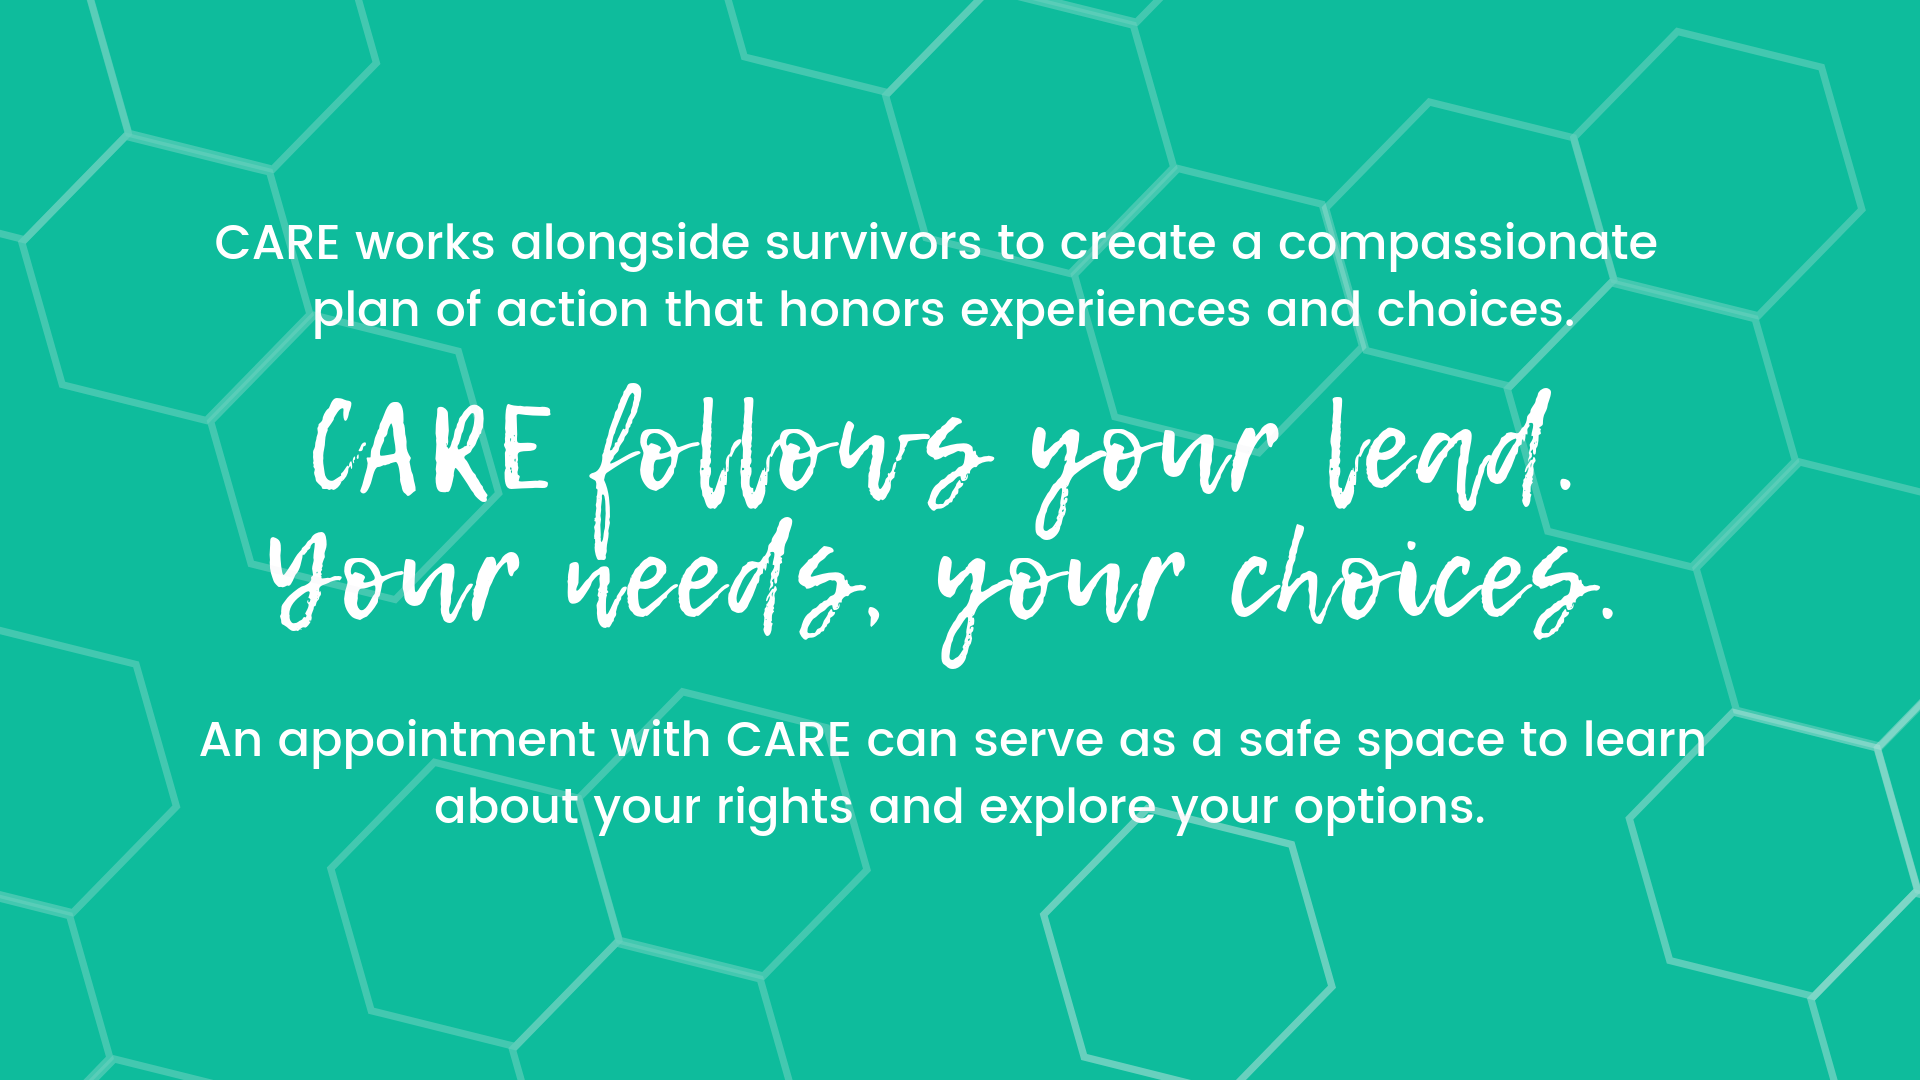 CARE follows your lead